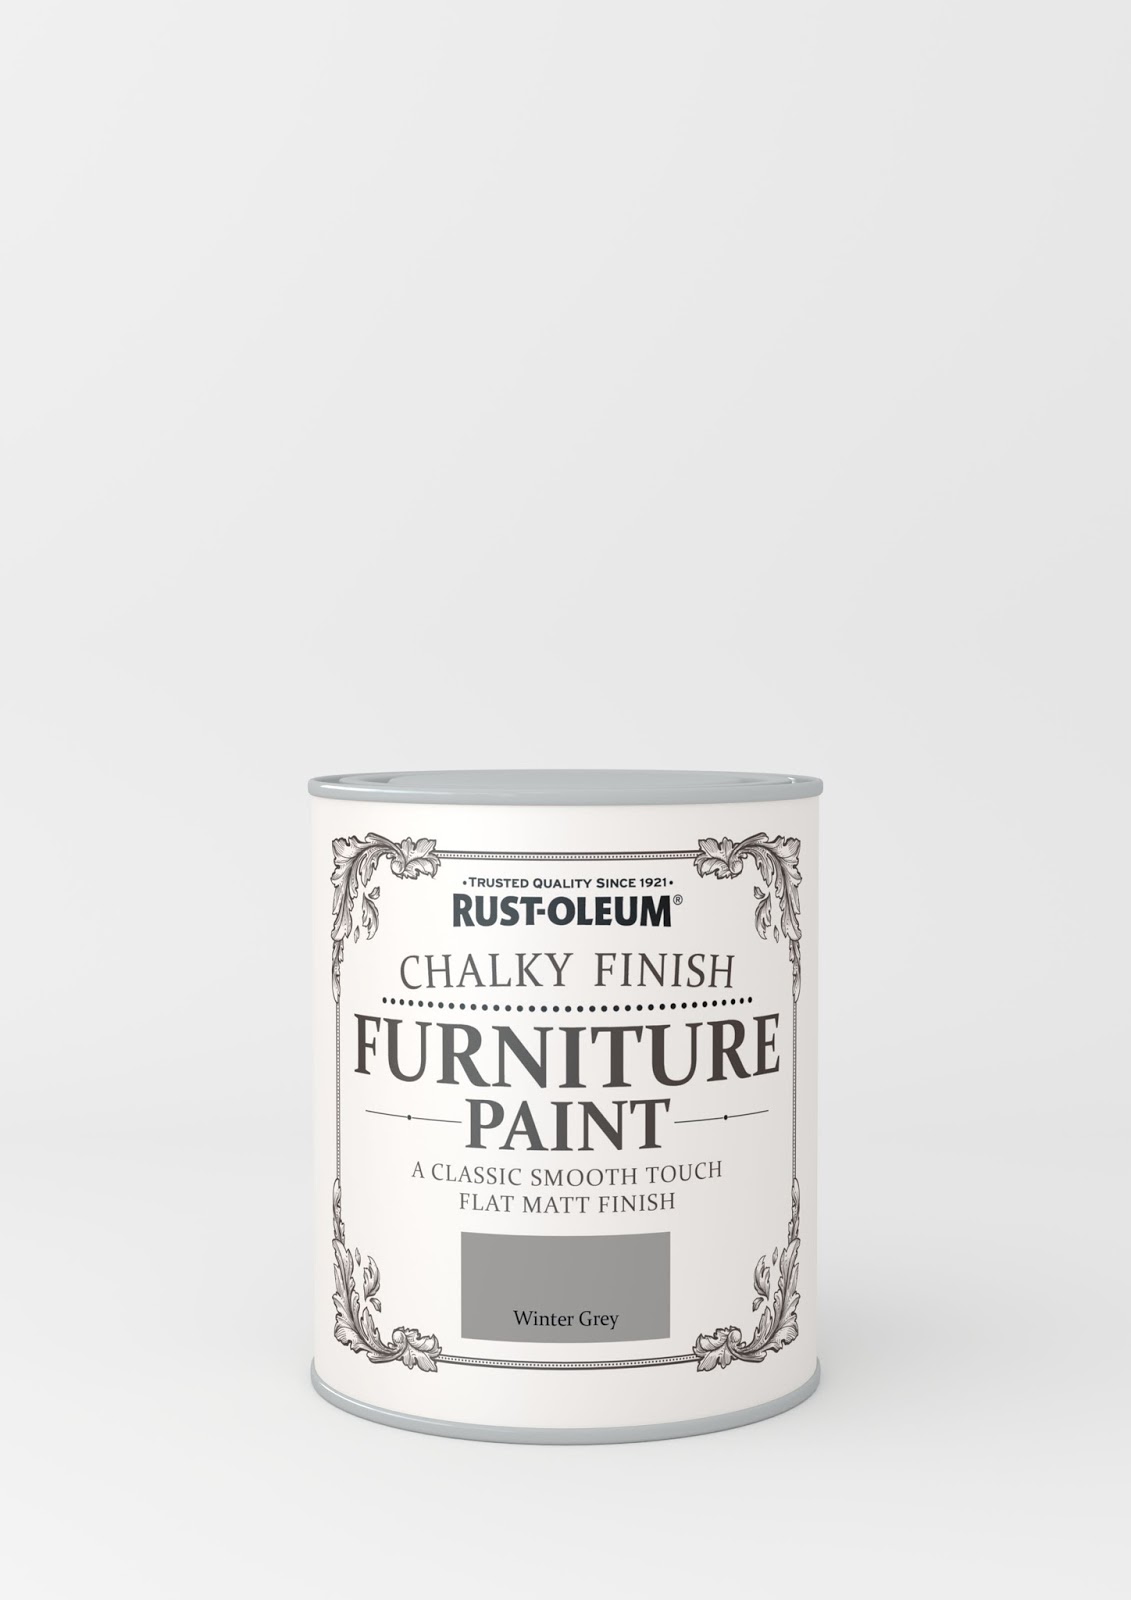 Rustoleum chalk paint in chalk white has been used in different regions of the house